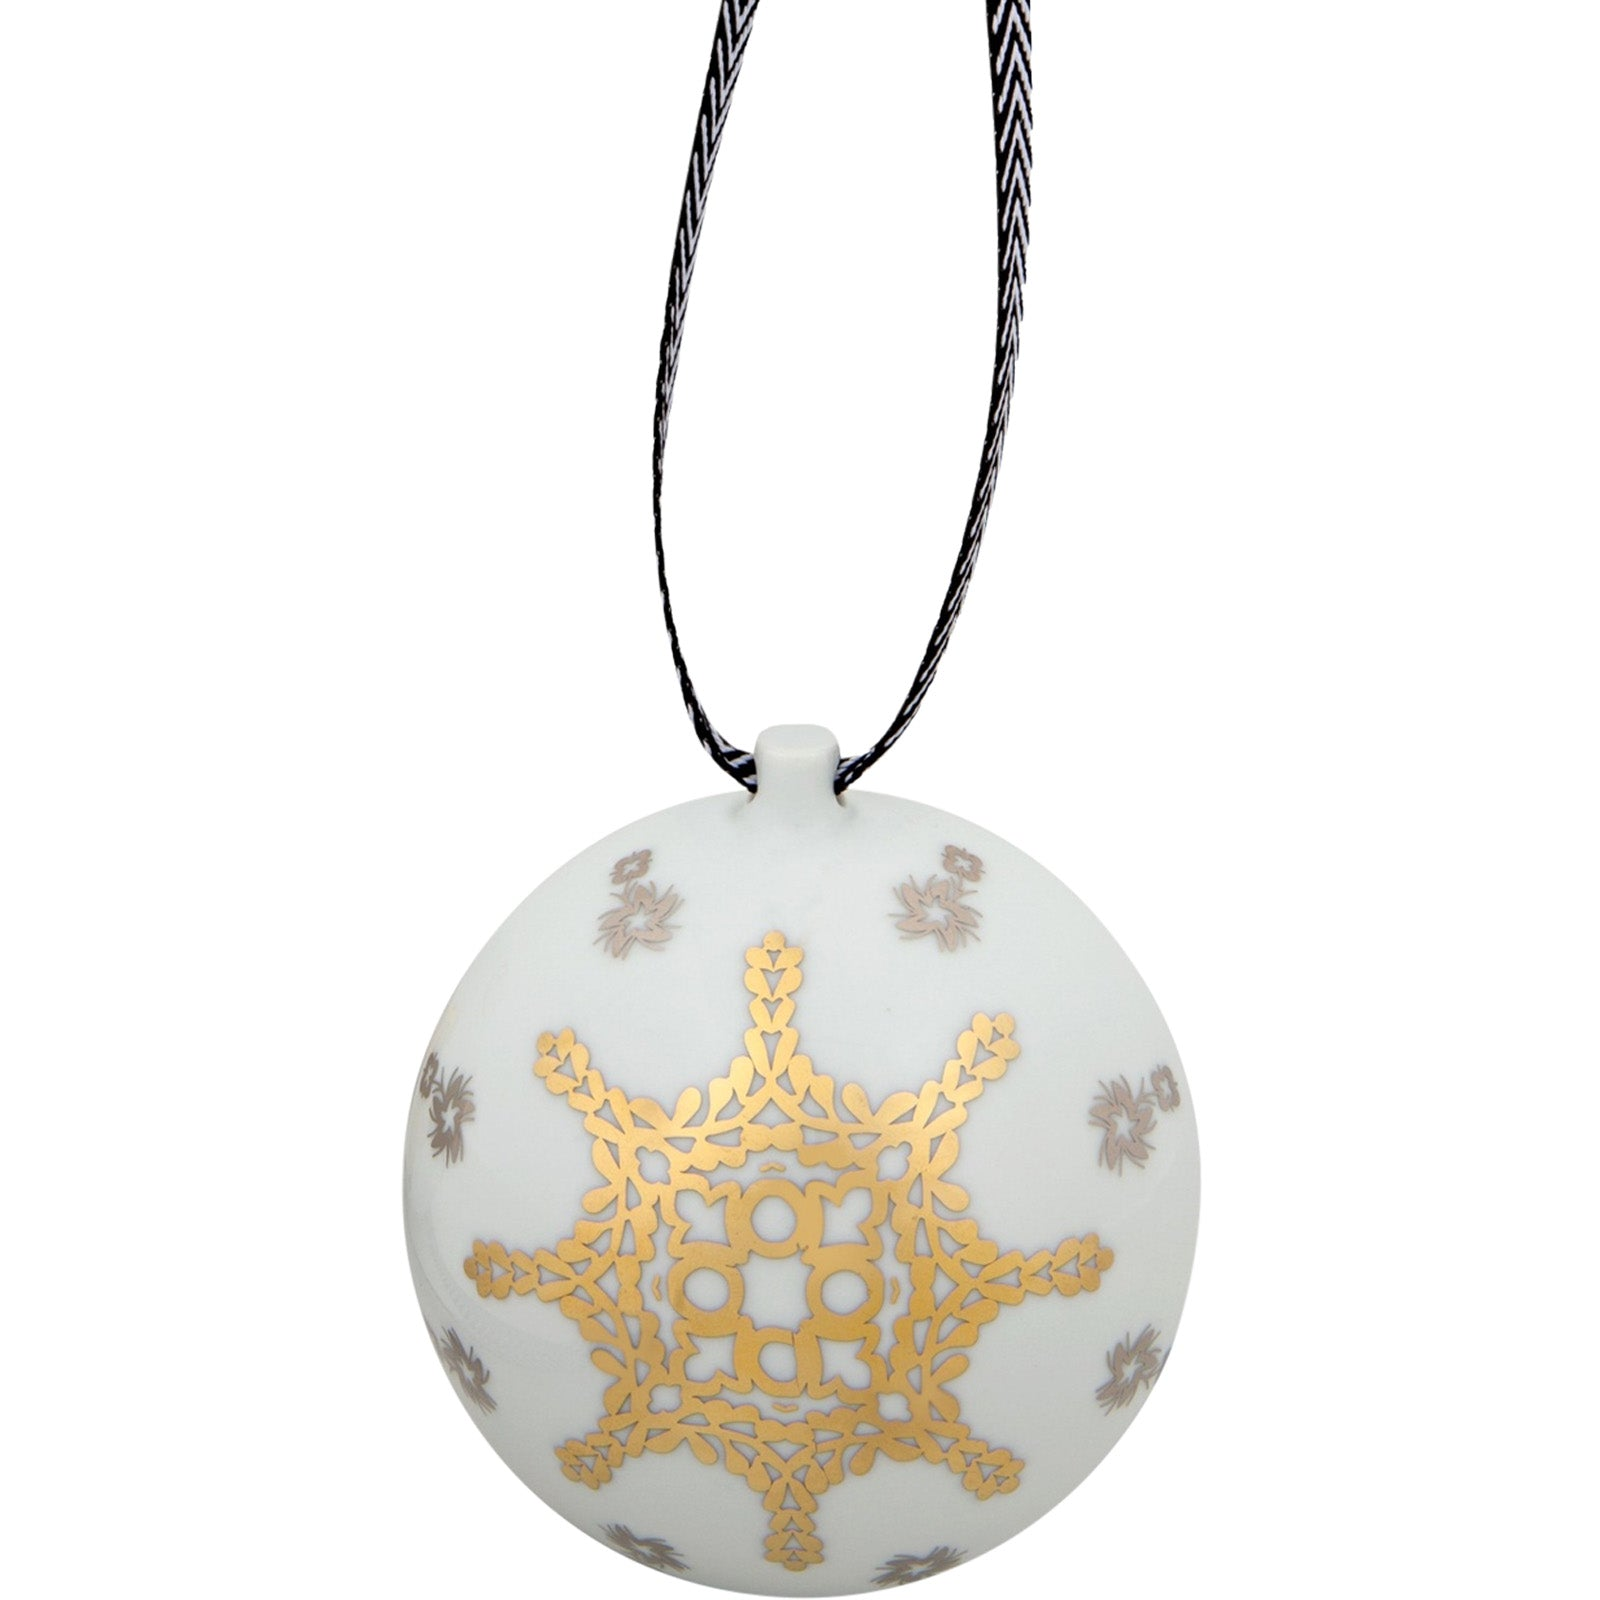 Paseo Christmas Bauble by Christian Lacroix - Christmas tree decoration - LuxDeco.com